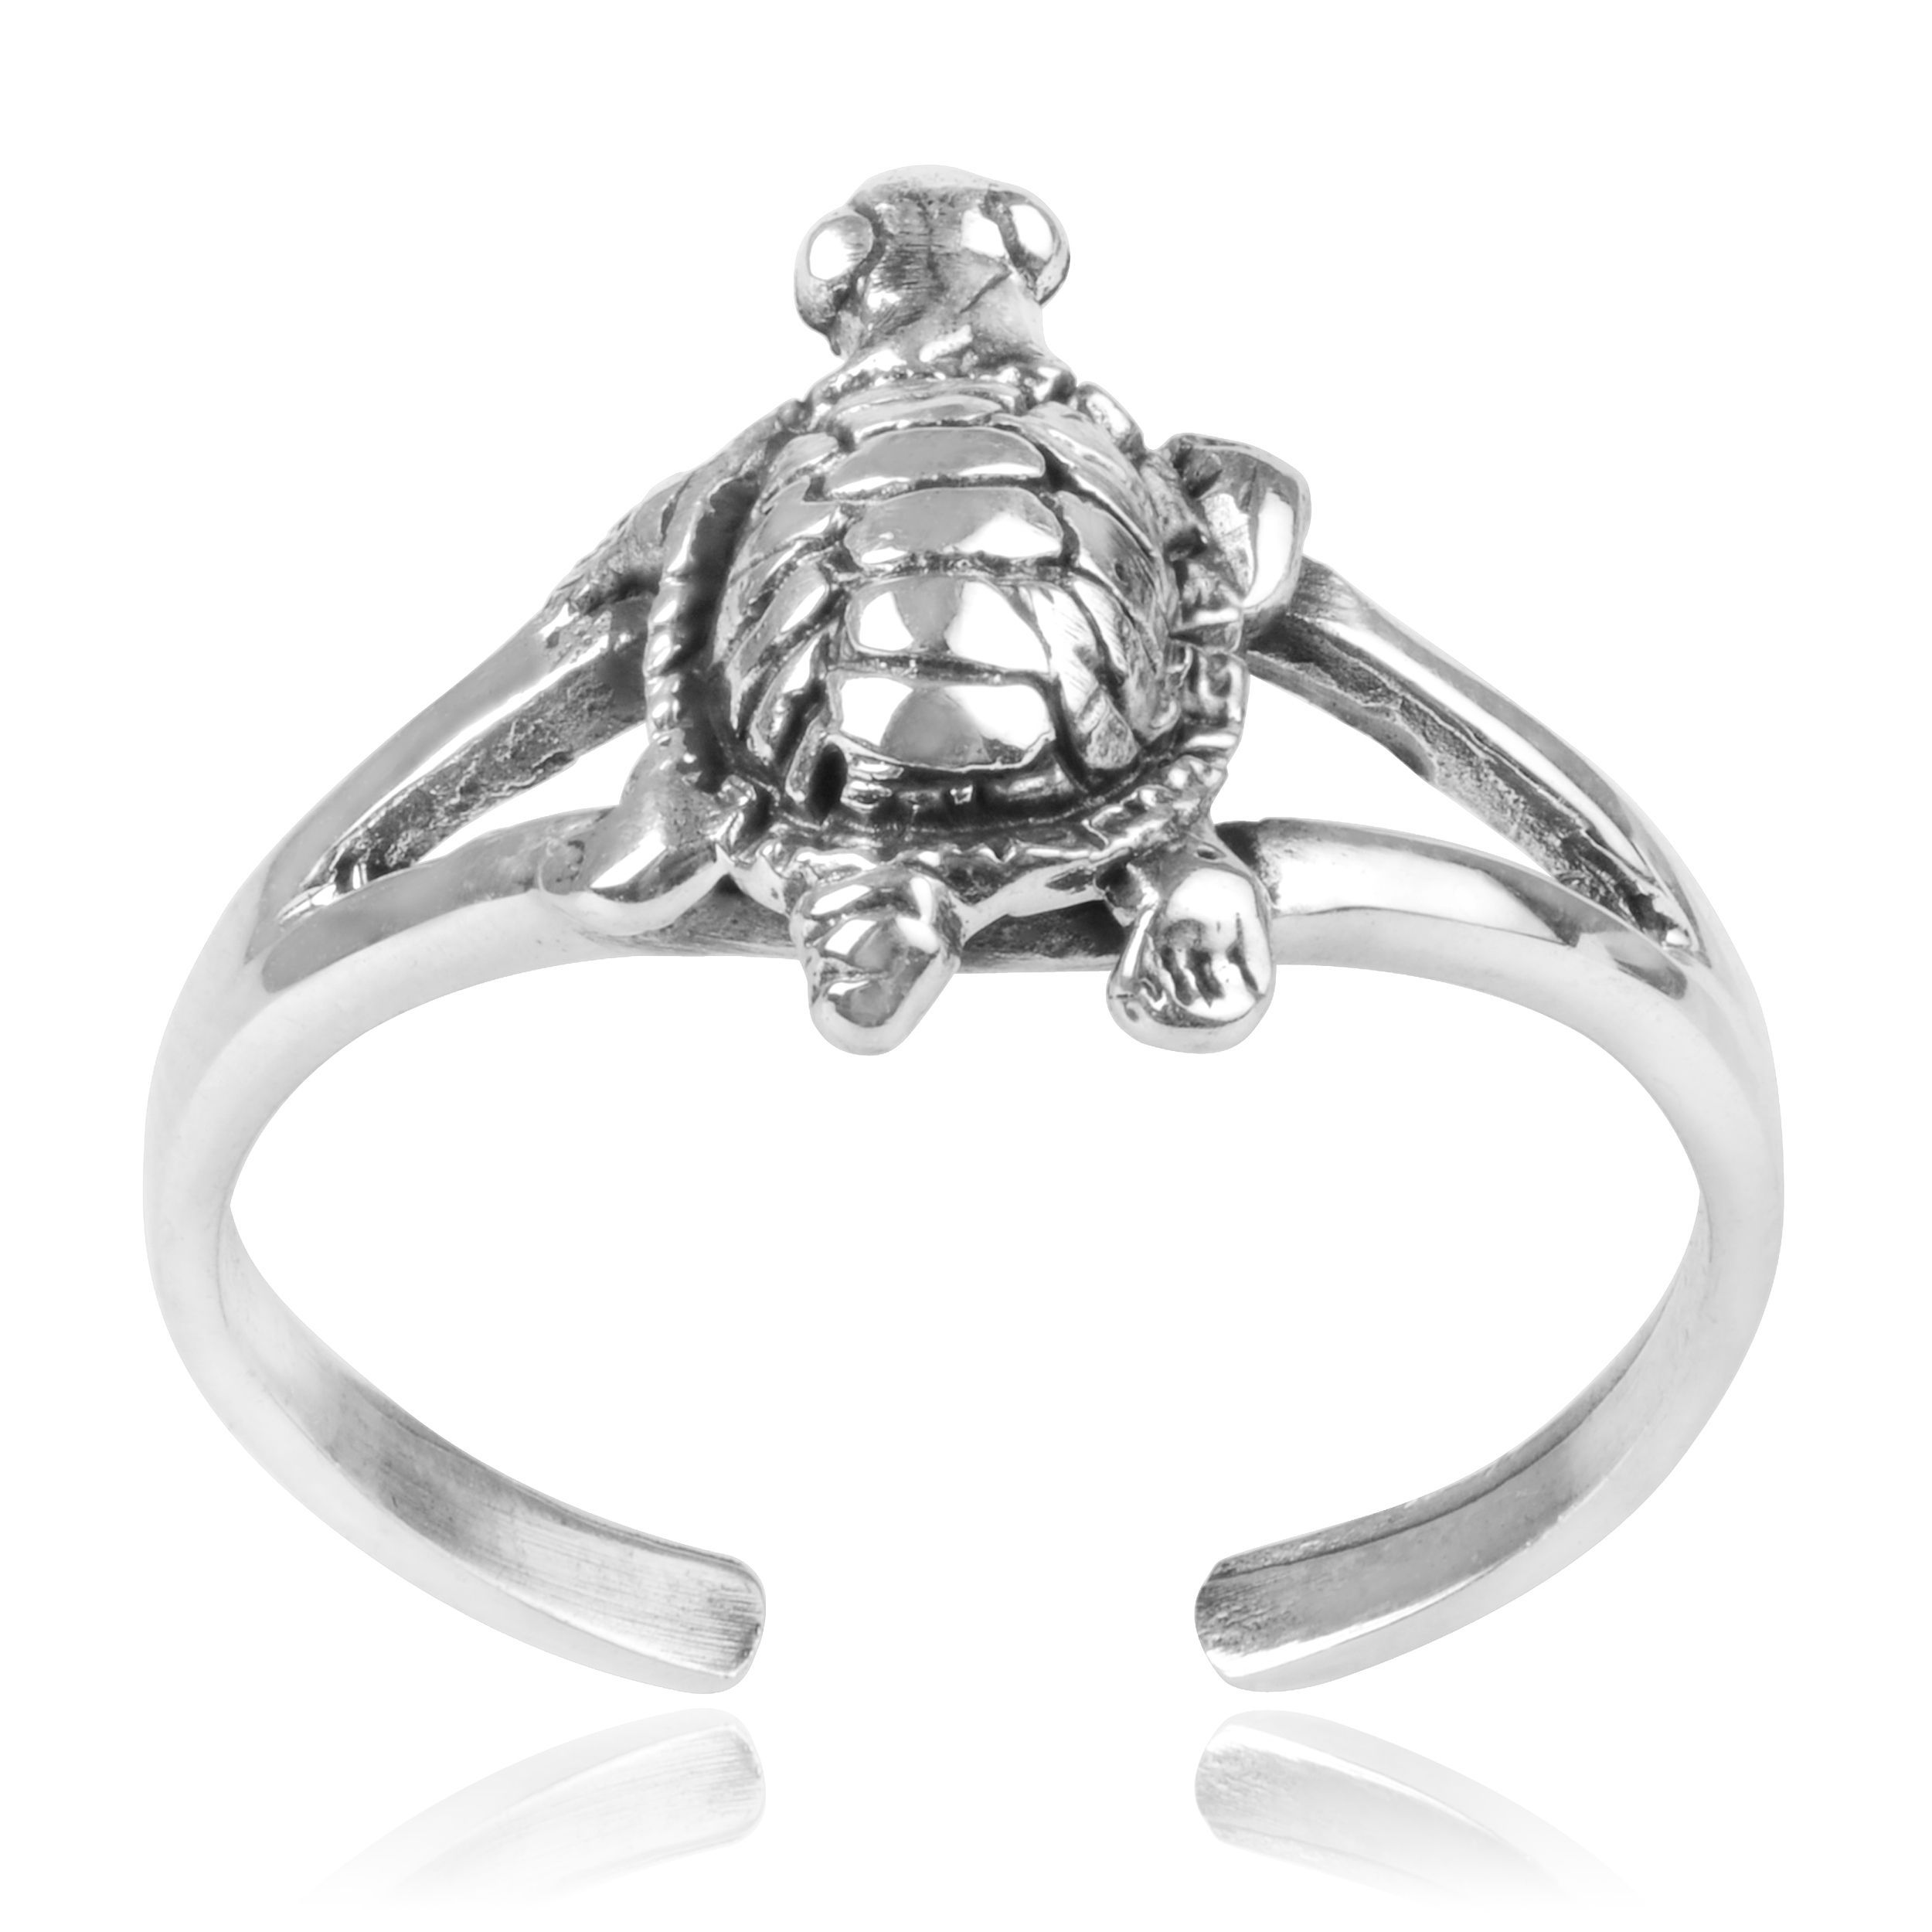 dg ring sr silver jewelry style rings wide g band bali turtle d woven